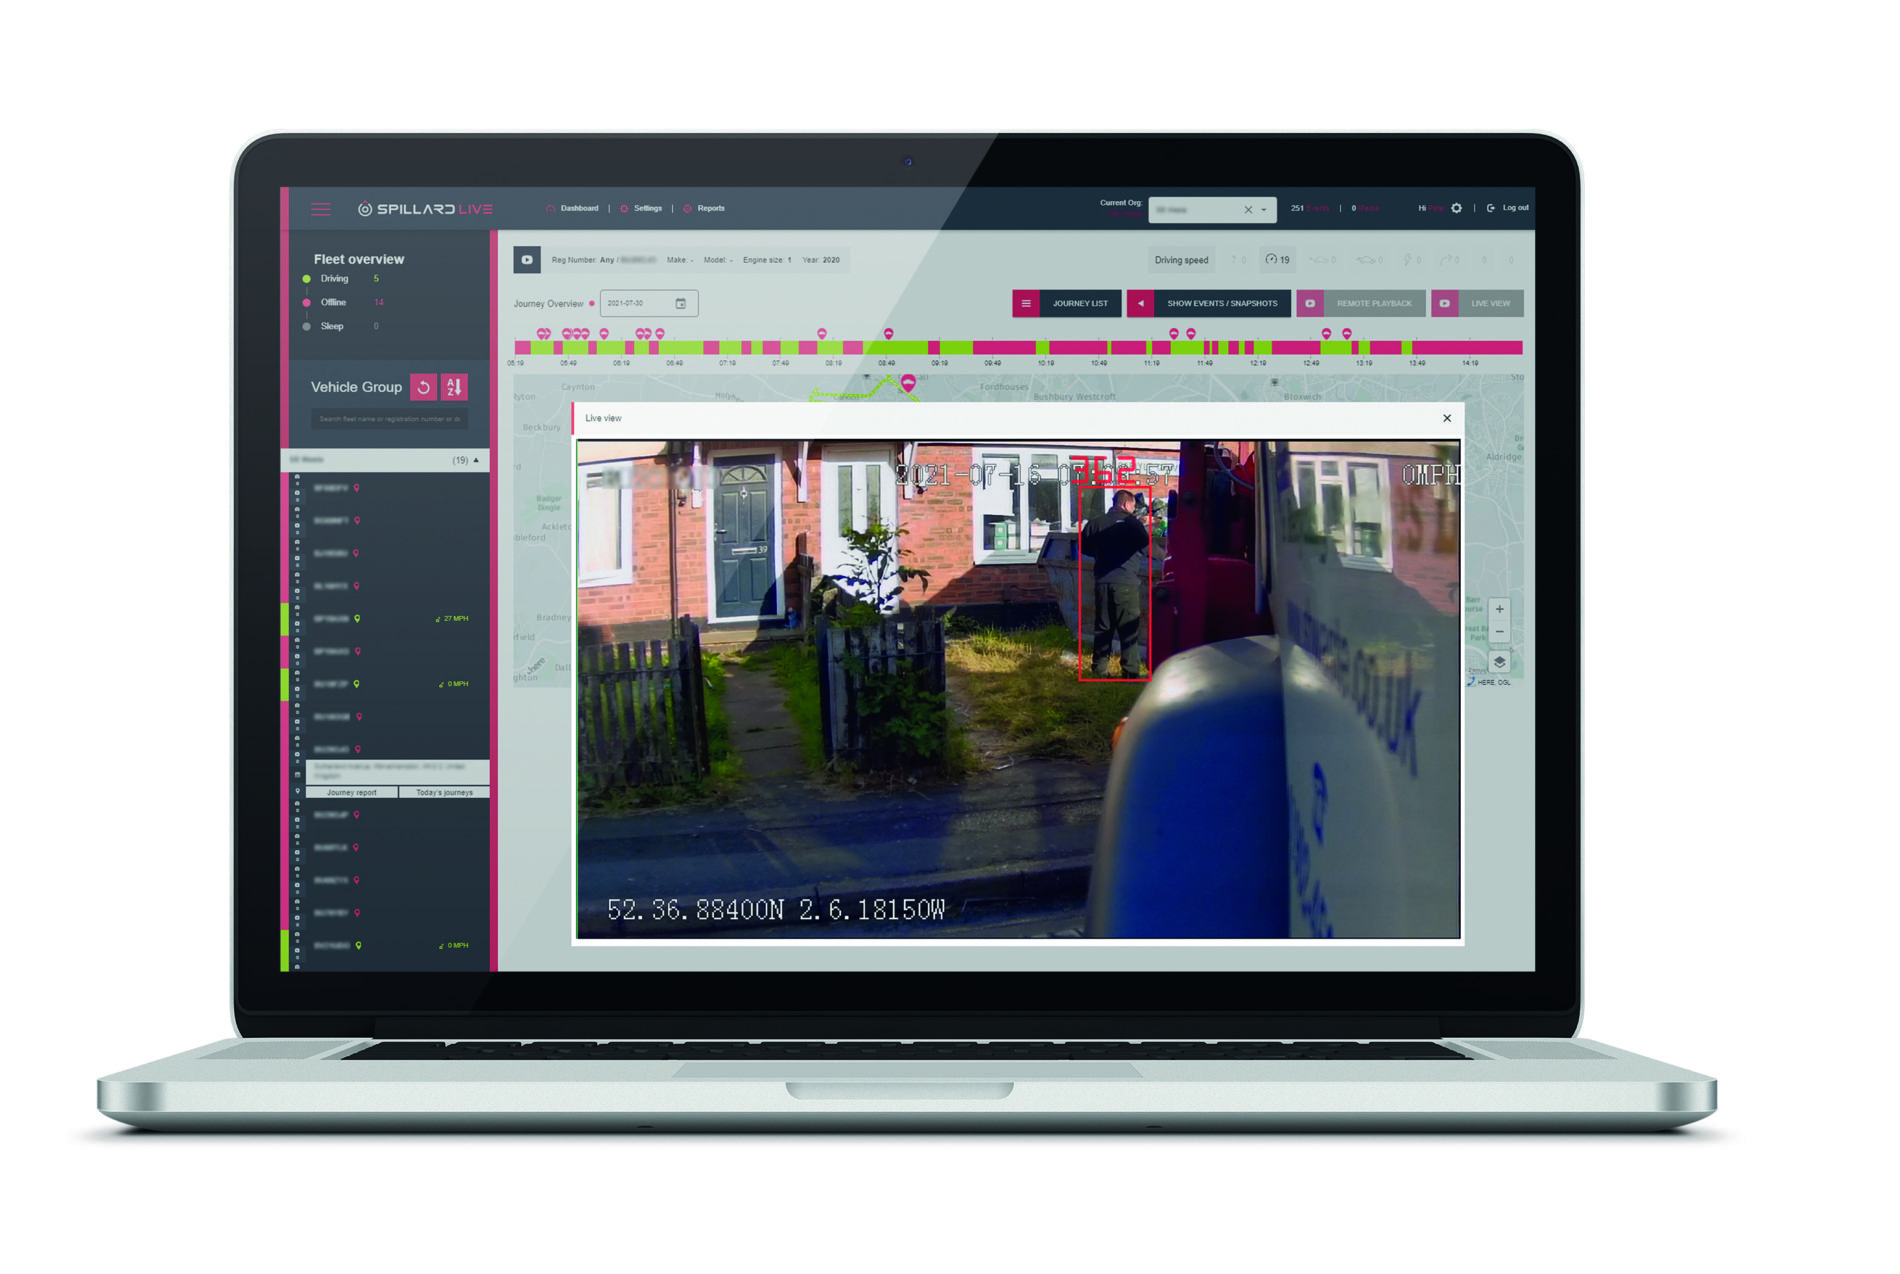 Spillard Human Detection System is the technological answer to safer driver and pedestrian co-existence. - SPILL Laptop HDS visual 1 in garden@72dpi